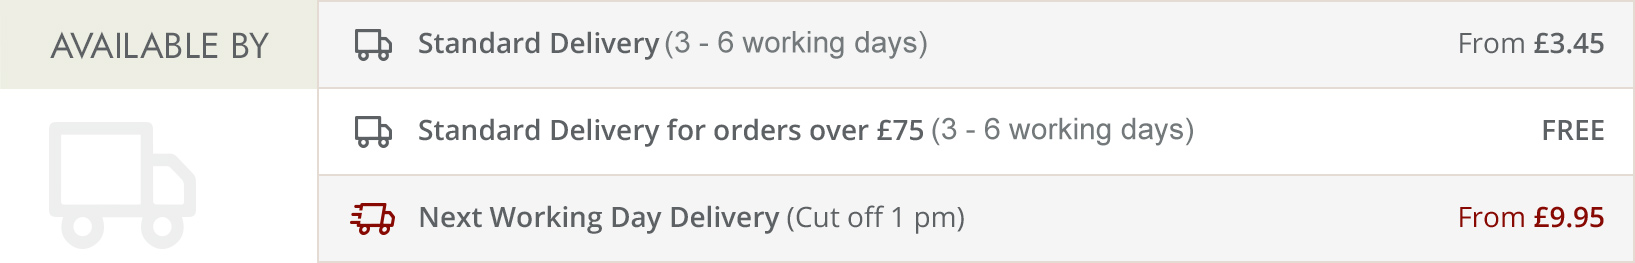 Standard Delivery 7 - 9 working days